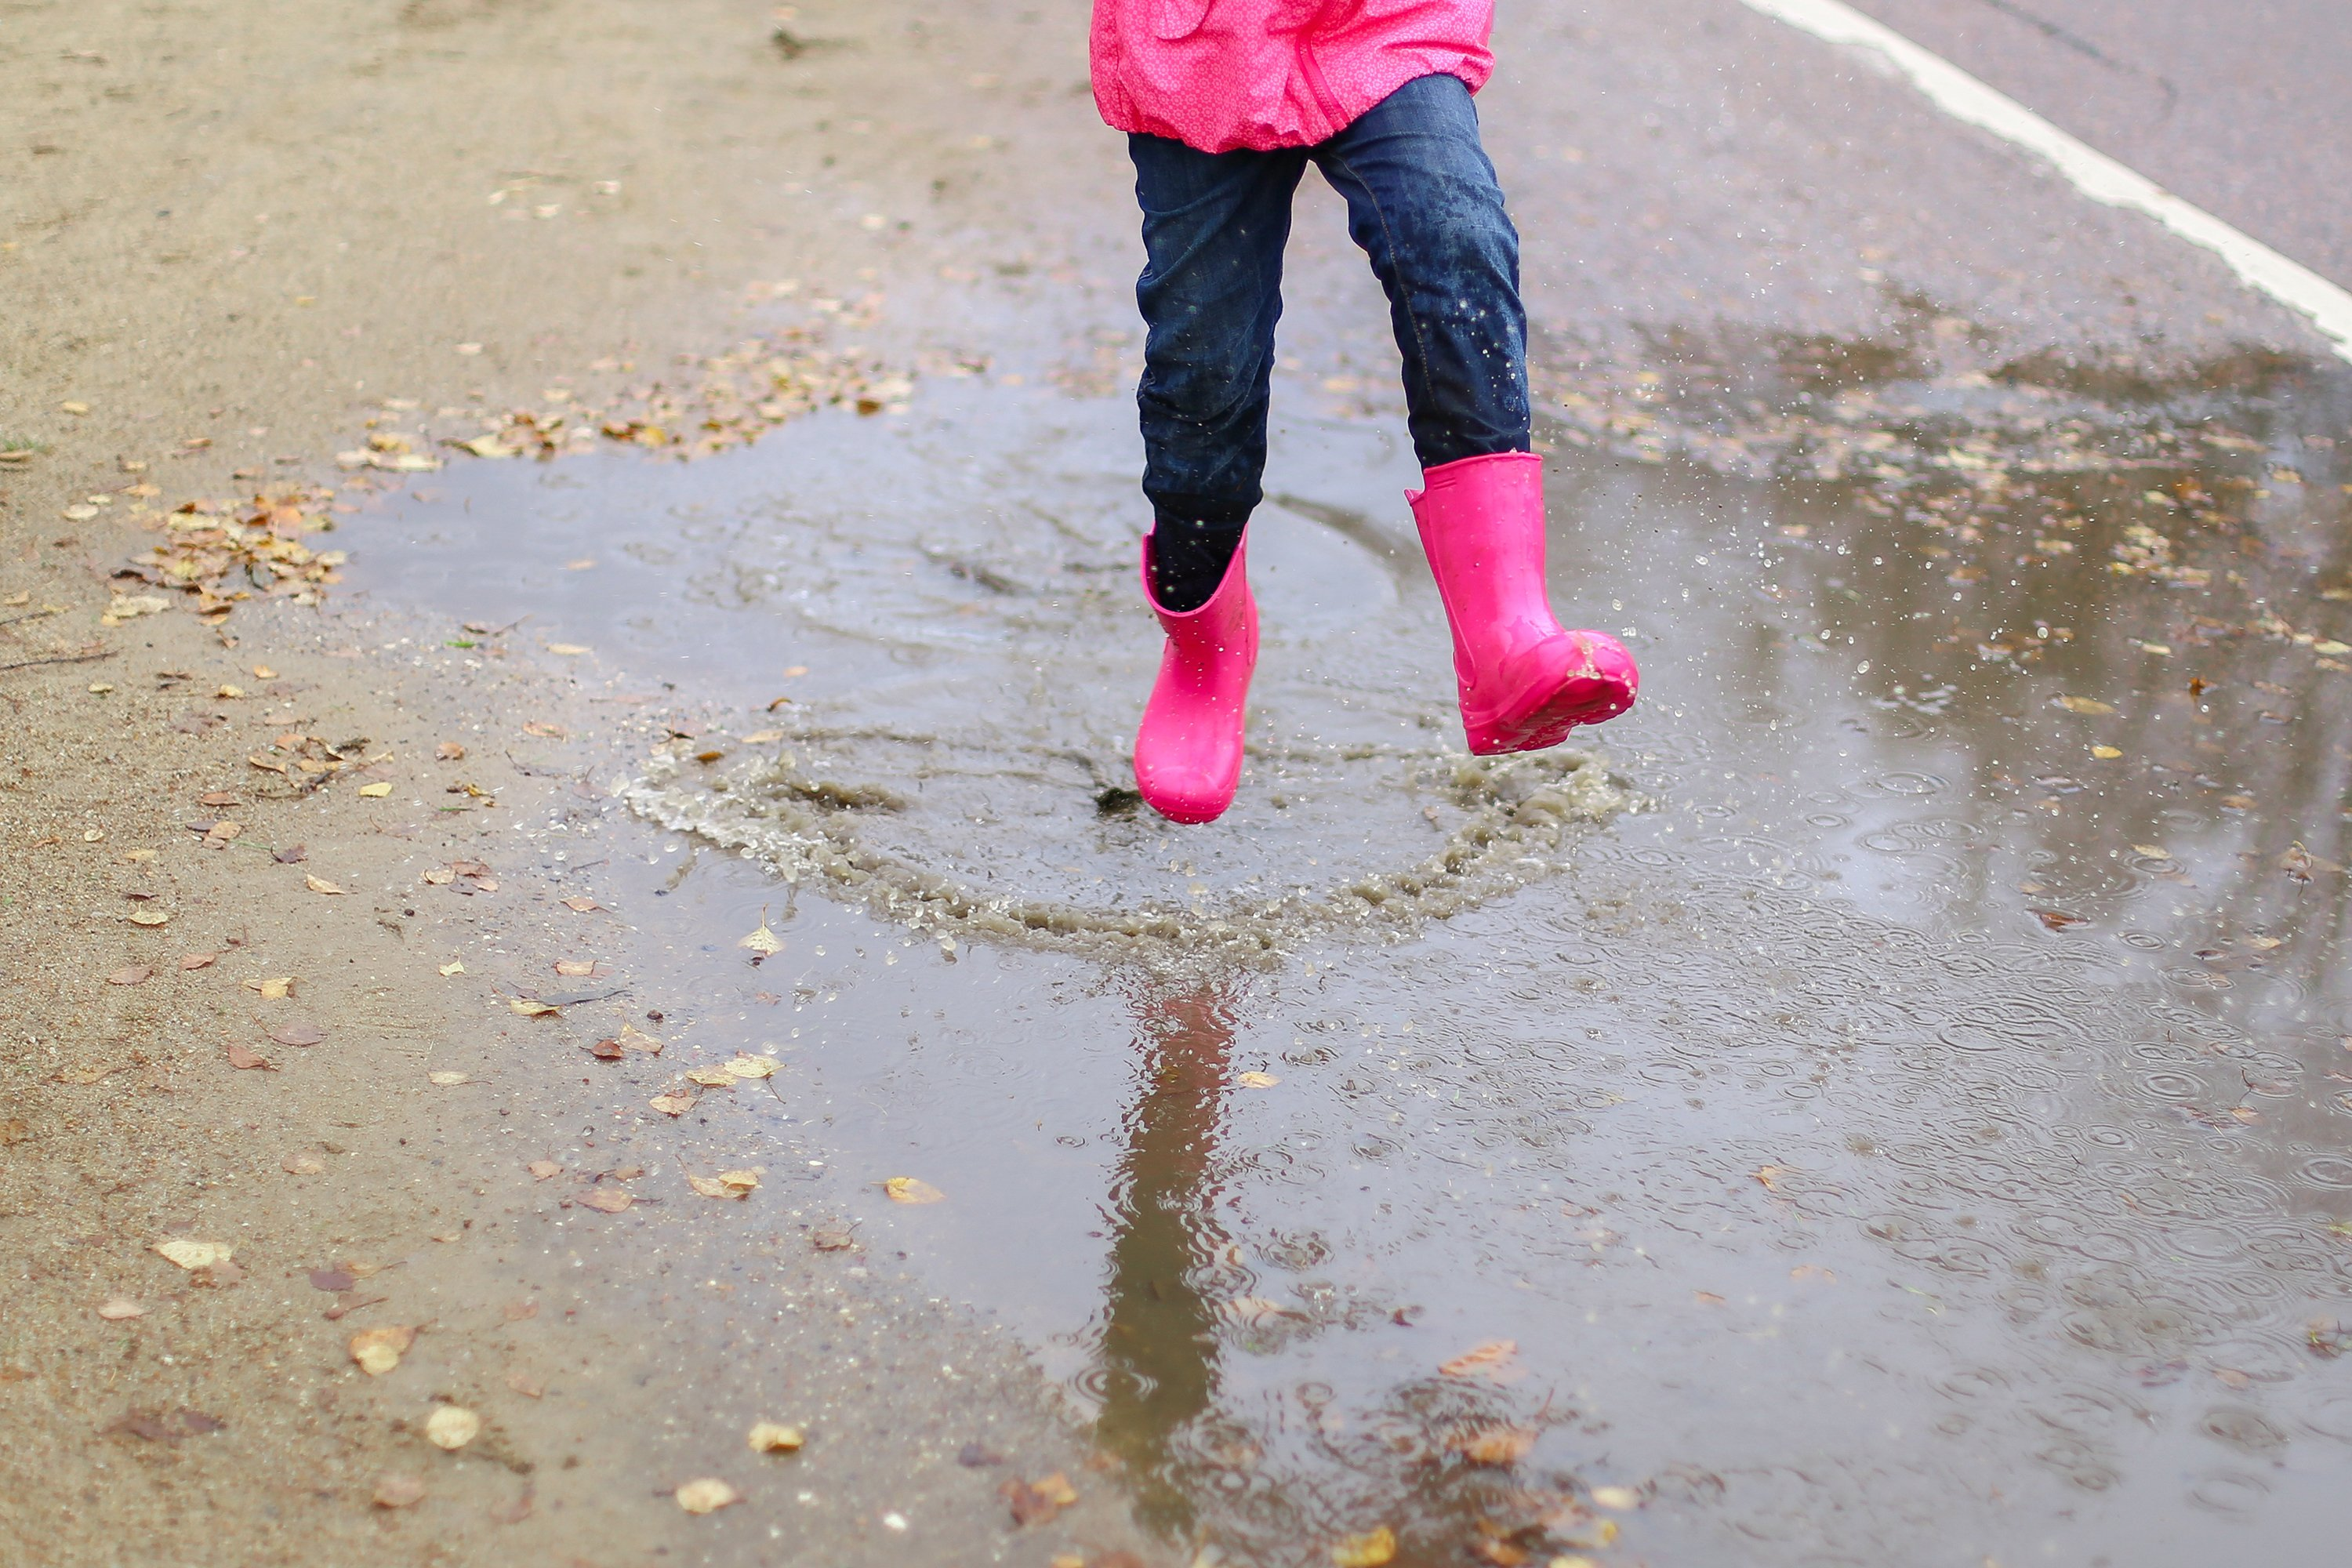 Girl in pink rubber boots jumps through puddle.Spring,autumn example image 1